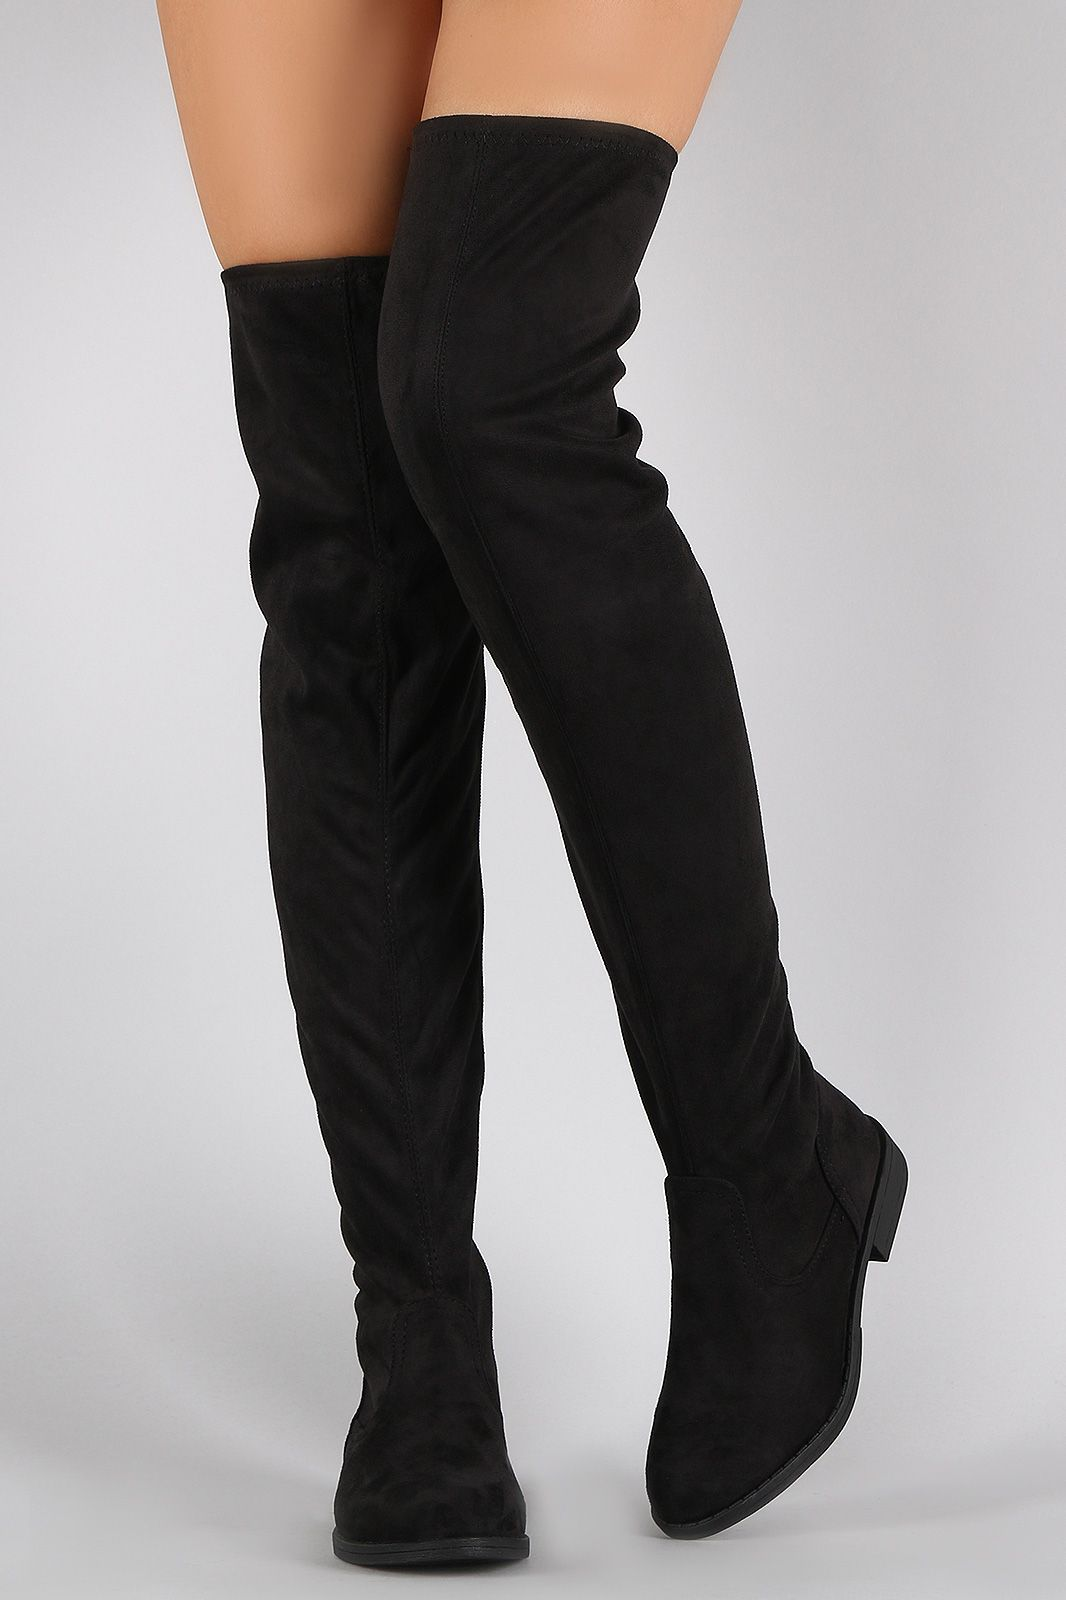 445eeb2a83f Bamboo Vegan Suede Flat Thigh High Boots I always think I want a pair of  these and then I m like no